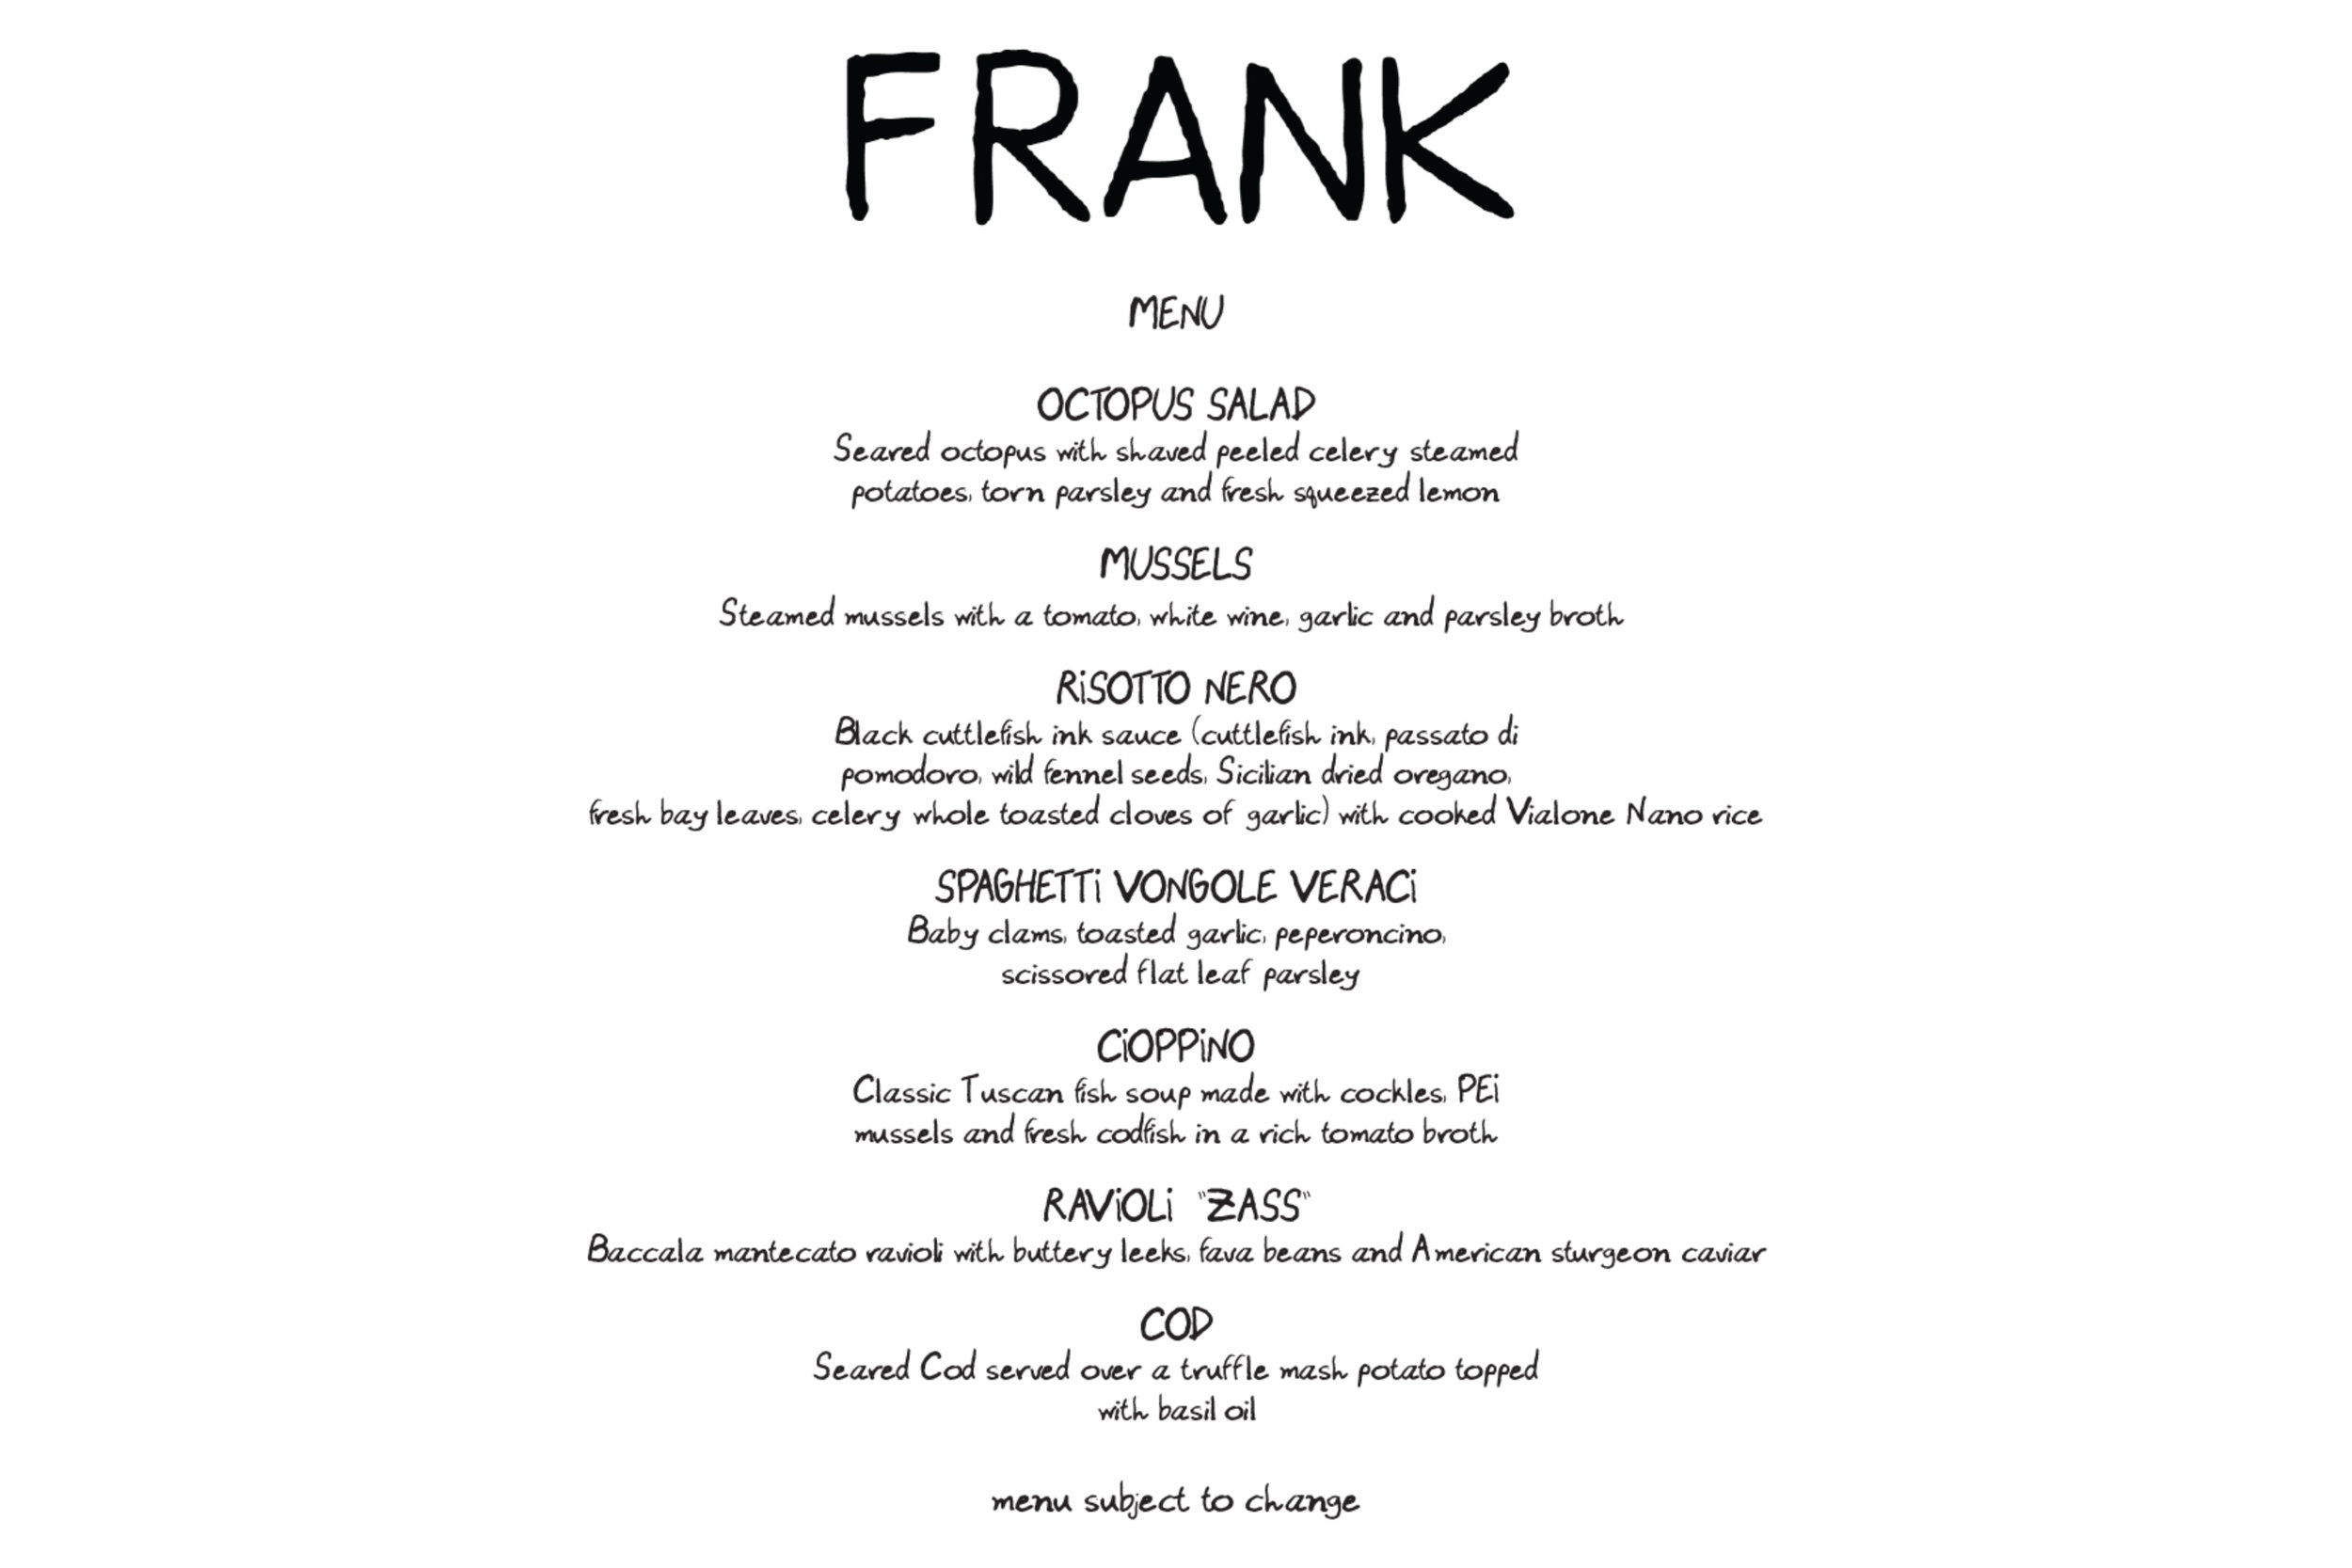 frank-seven-fishes-3.jpg